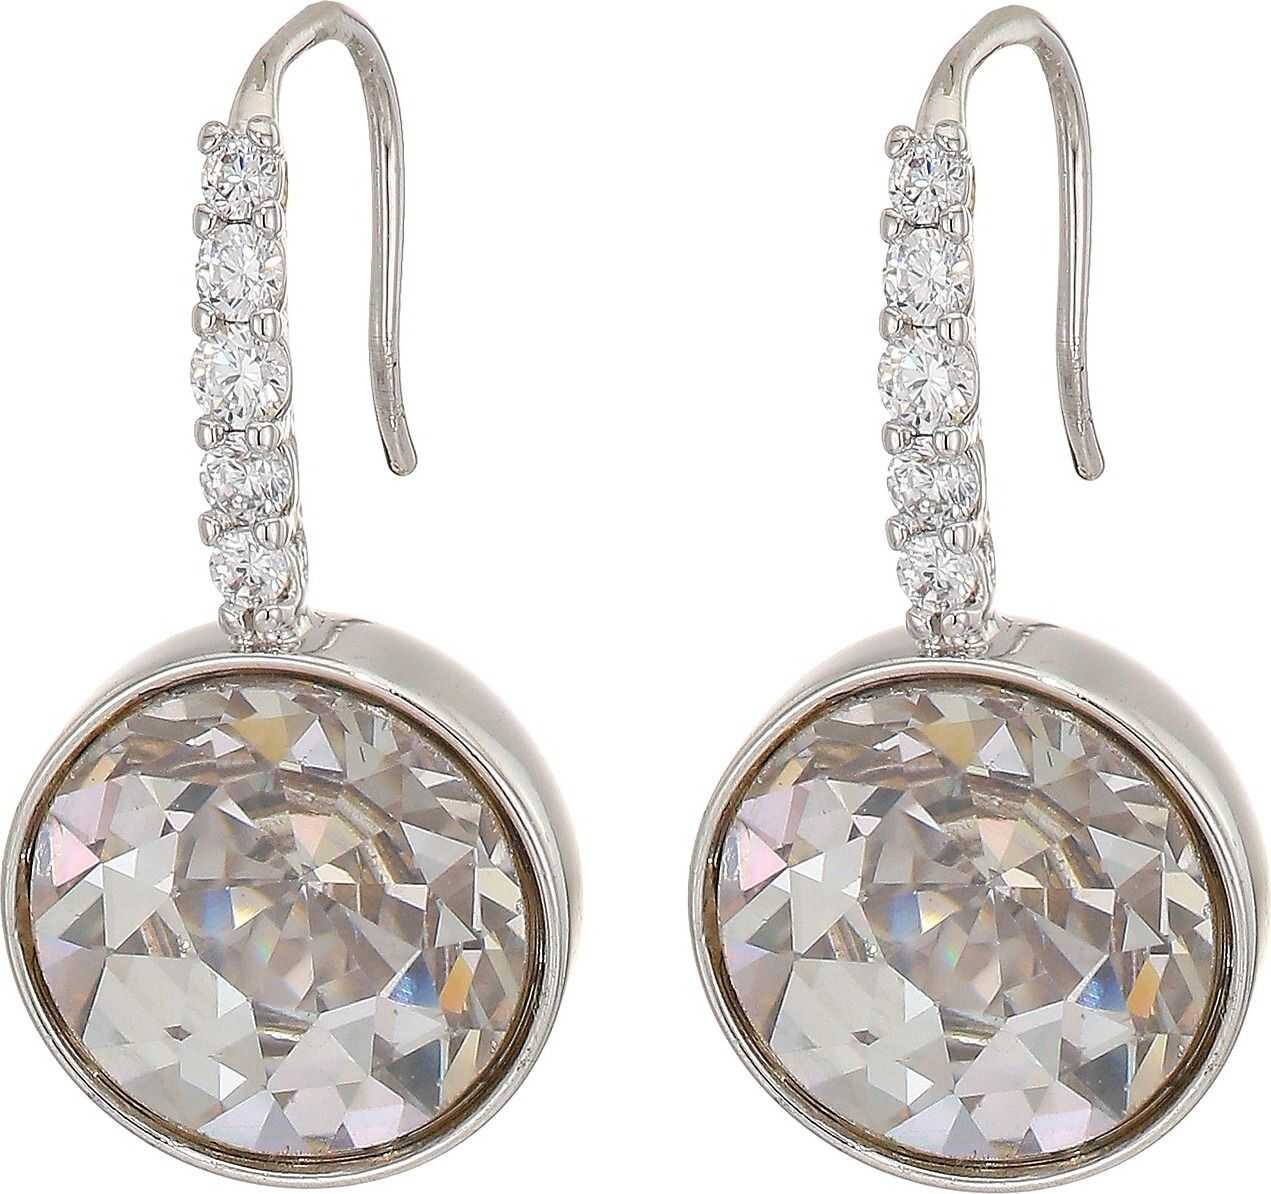 Kate Spade New York Reflecting Pool Pave Round Drop Earrings Clear/Silver